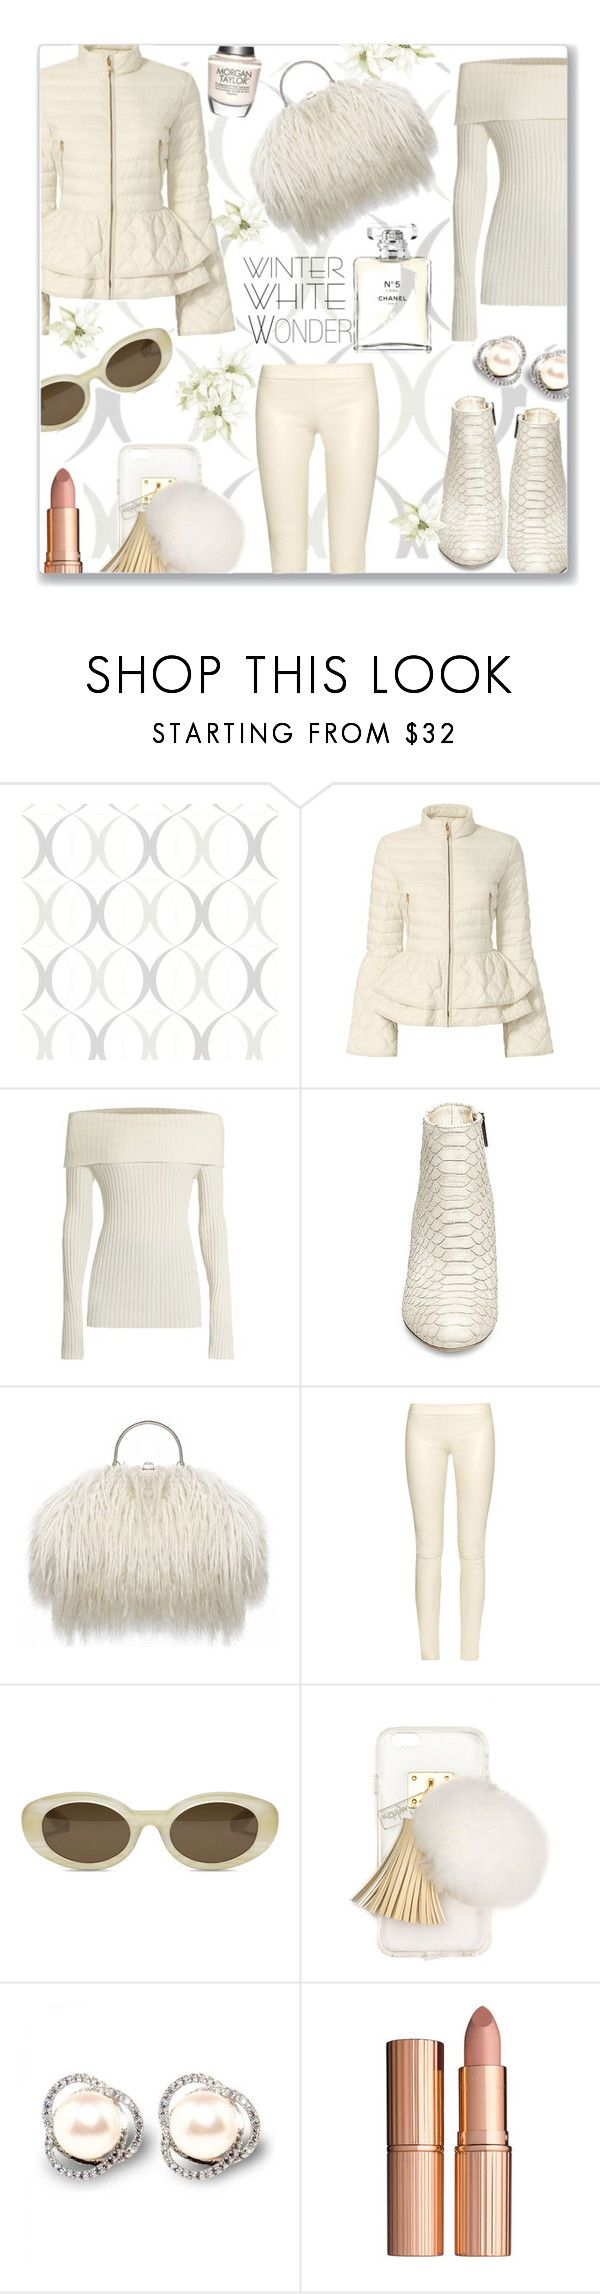 """""""Winter Wonder"""" by jckallan ❤ liked on Polyvore featuring Brewster Home Fashions, Elizabeth Roberts, The Row, Steve Madden, Elizabeth and James, Ashlyn'd, Charlotte Tilbury, Morgan Taylor, Chanel and contestentry"""